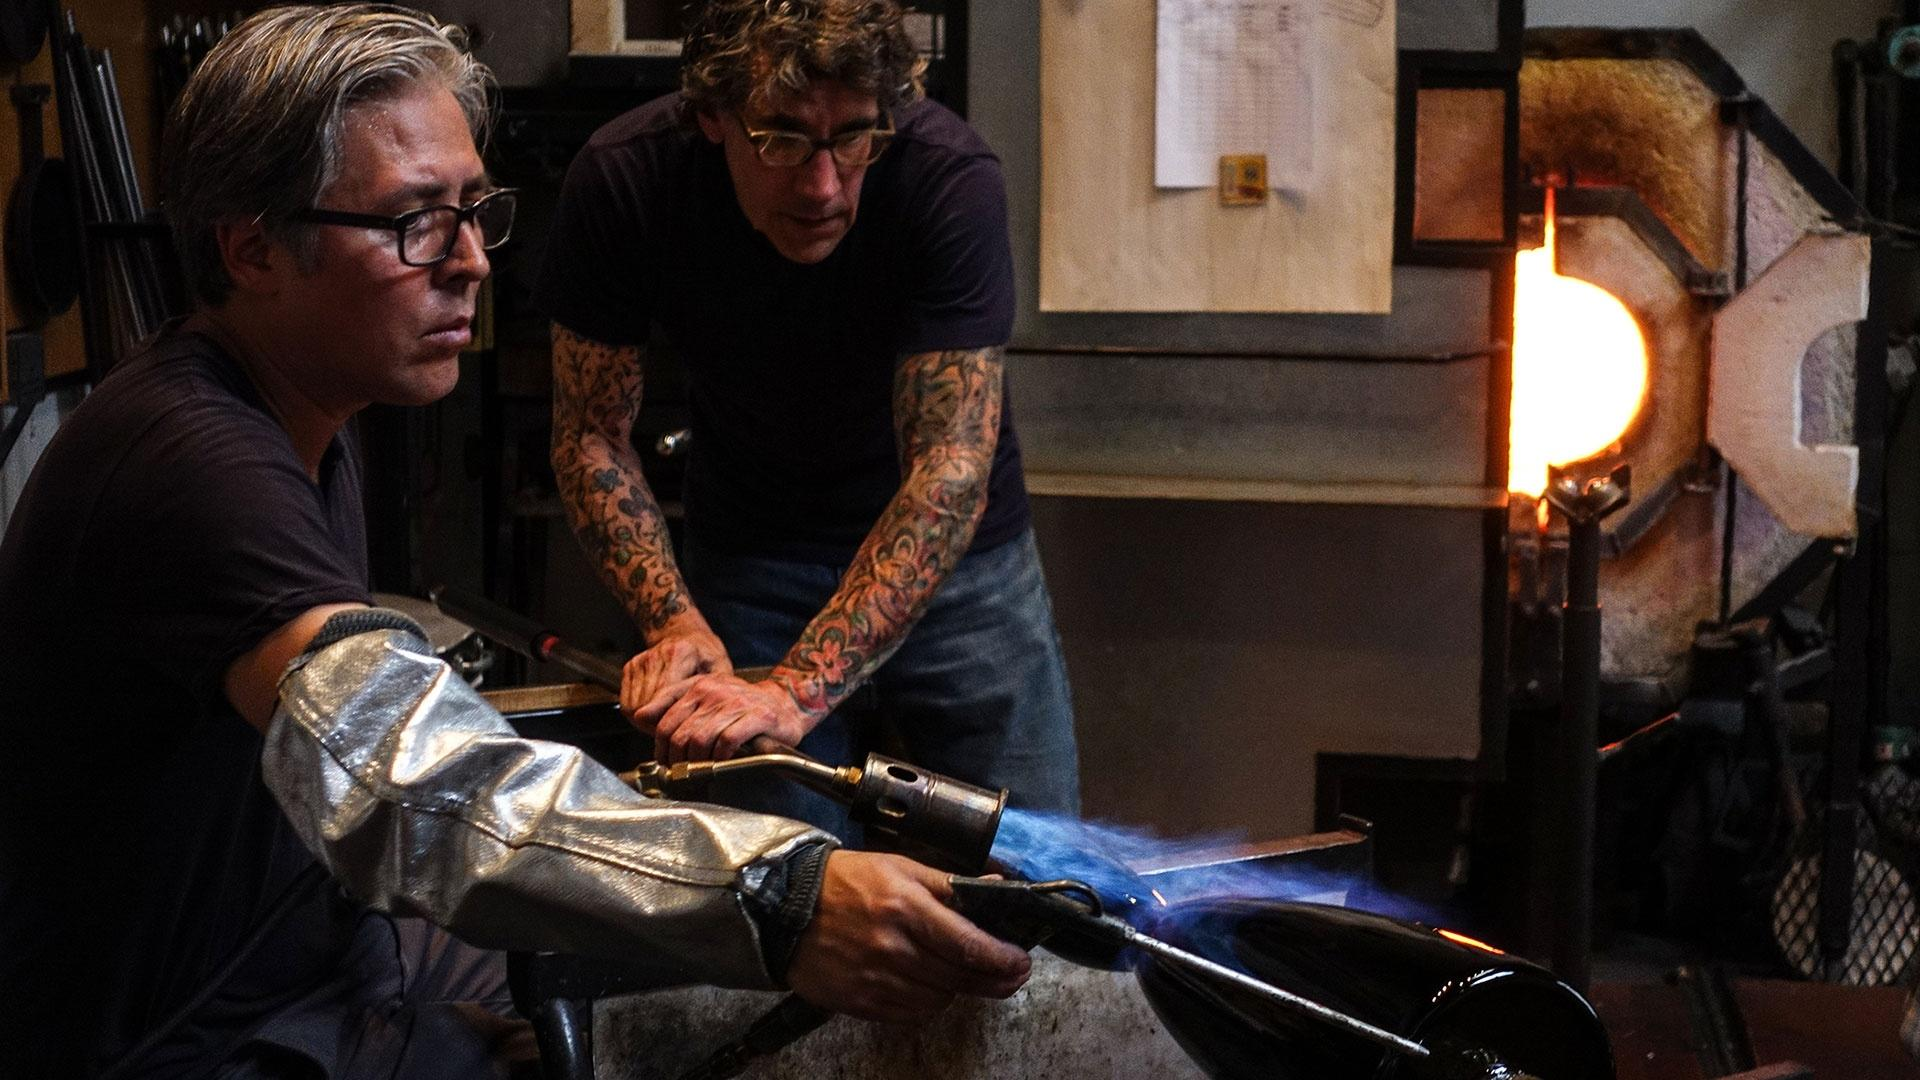 Preston Singletary glassblowing